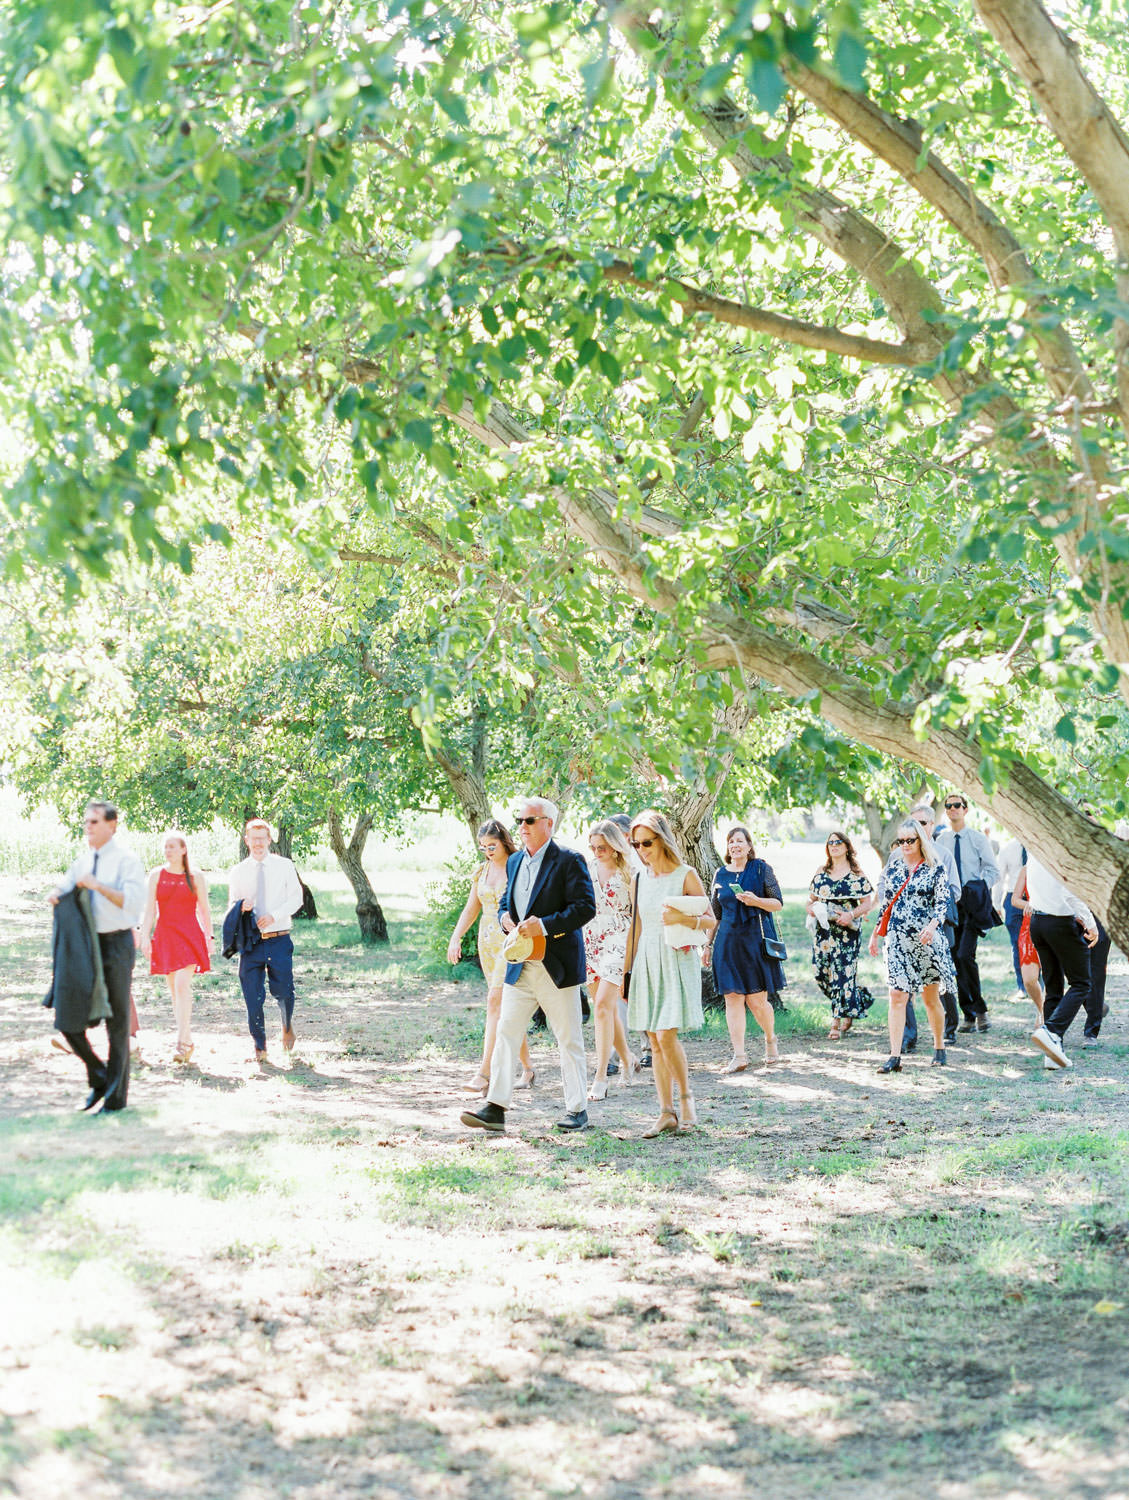 Guests walking through a forest to get to the ceremony. Full Belly Farm ceremony on Martha Stewart Weddings by film photographer Cavin Elizabeth Photography